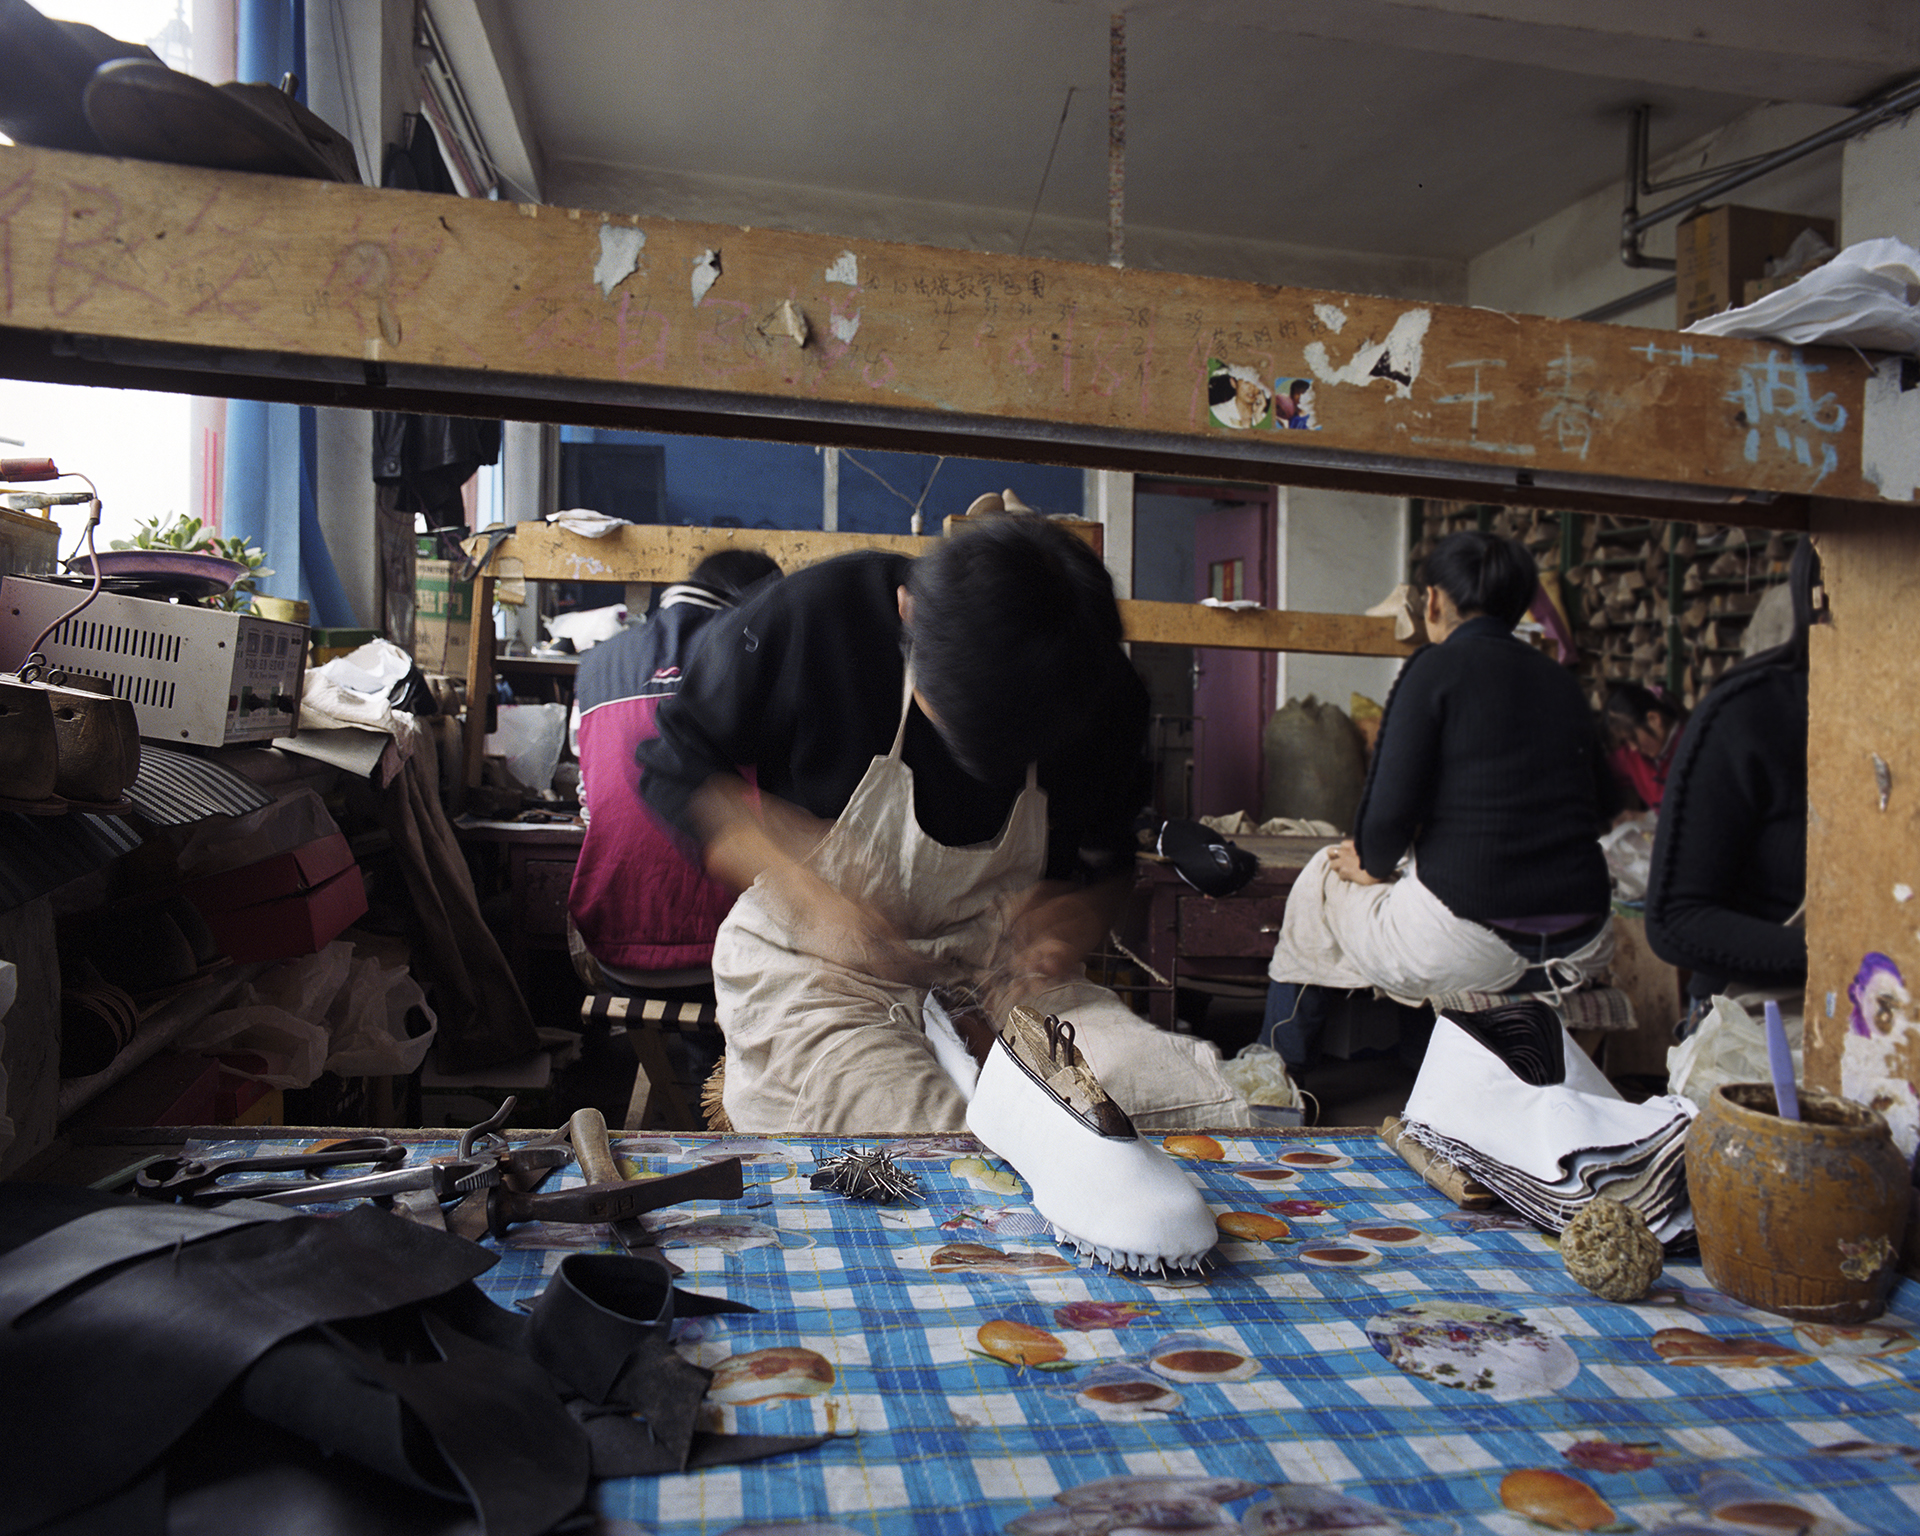 Young workers in the small shoe factory.